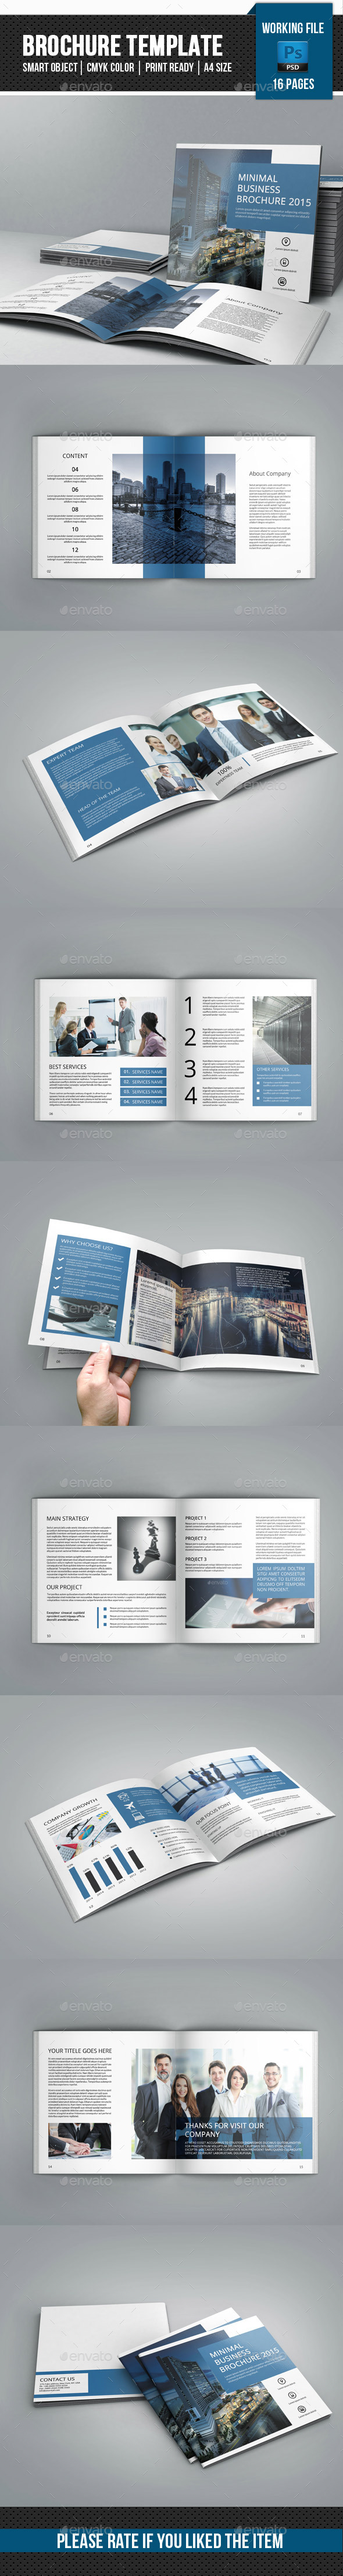 GraphicRiver Corporate Square Brochure-V26 11454161